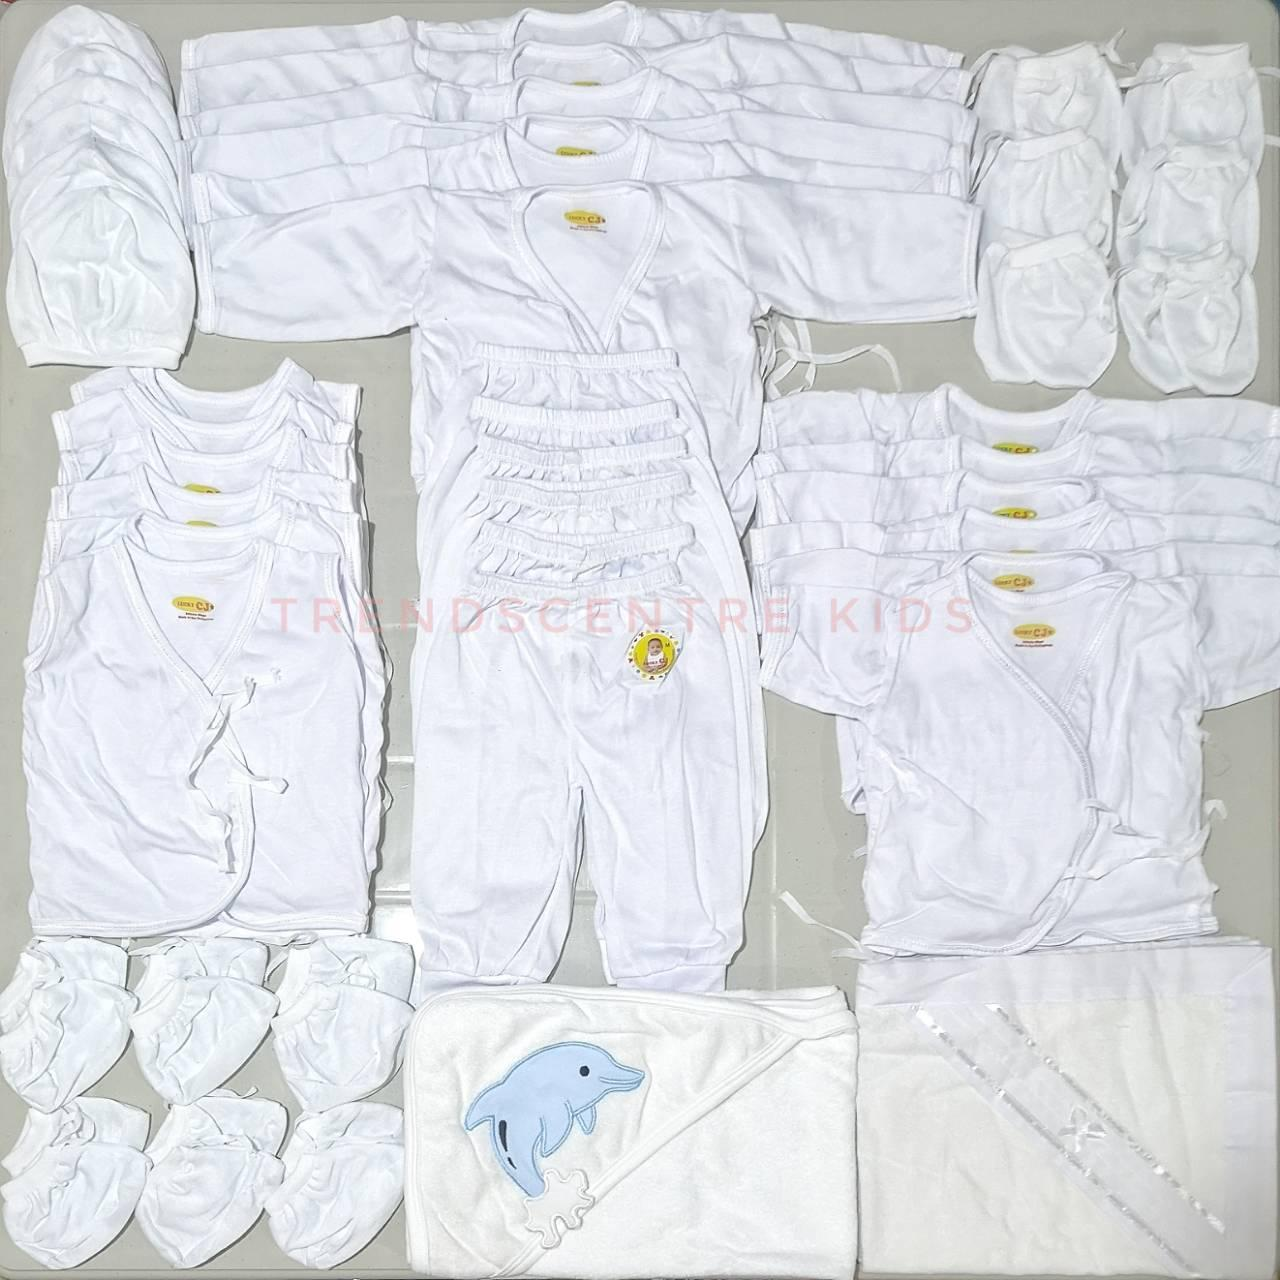 92ae4d0bb Newborn Clothes for sale - Newborn Baby Clothes online brands ...